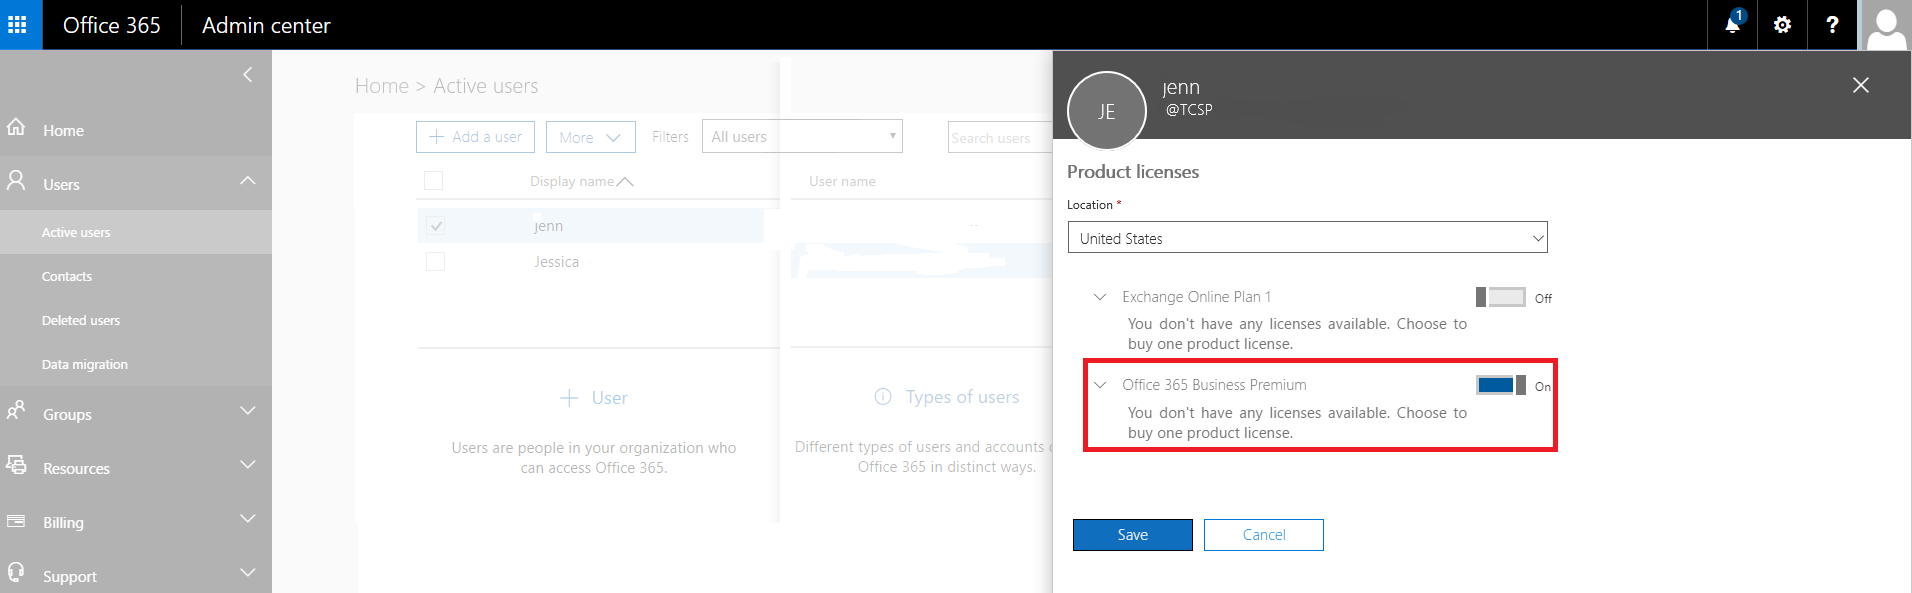 Office 365 Remove License Step 6